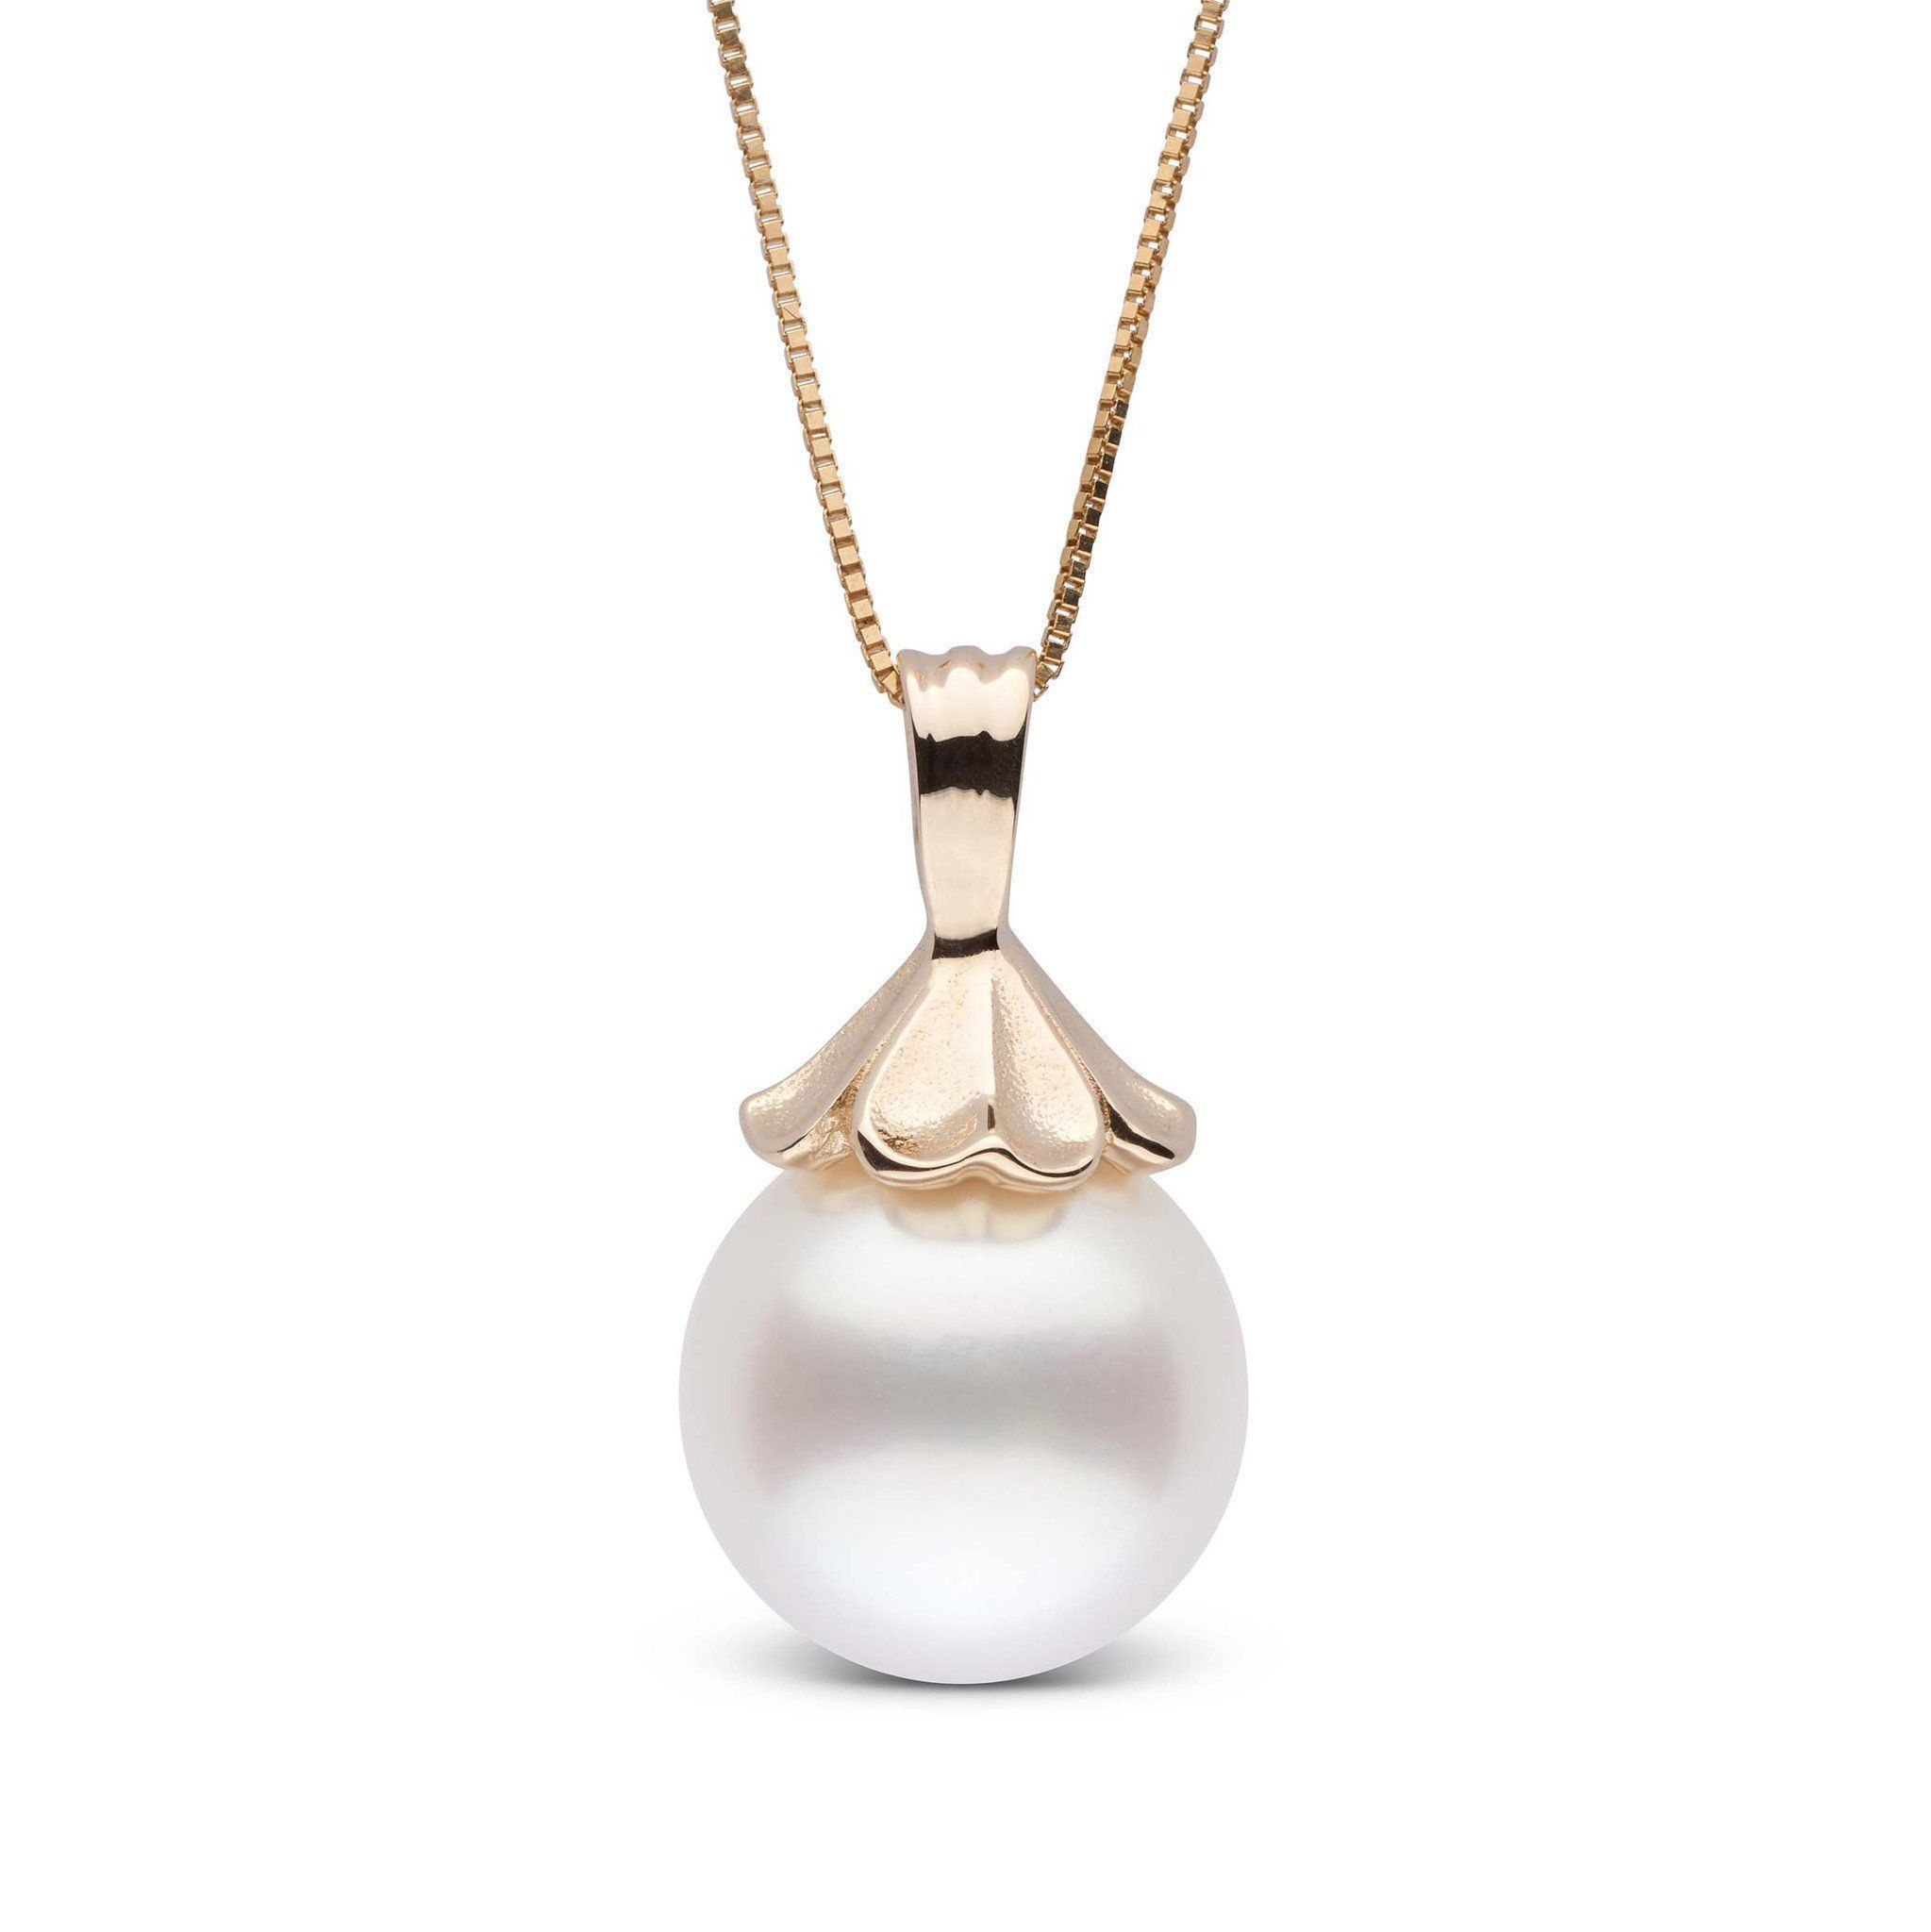 Petal Collection White 11.0-12.0 mm South Sea Pearl Pendant